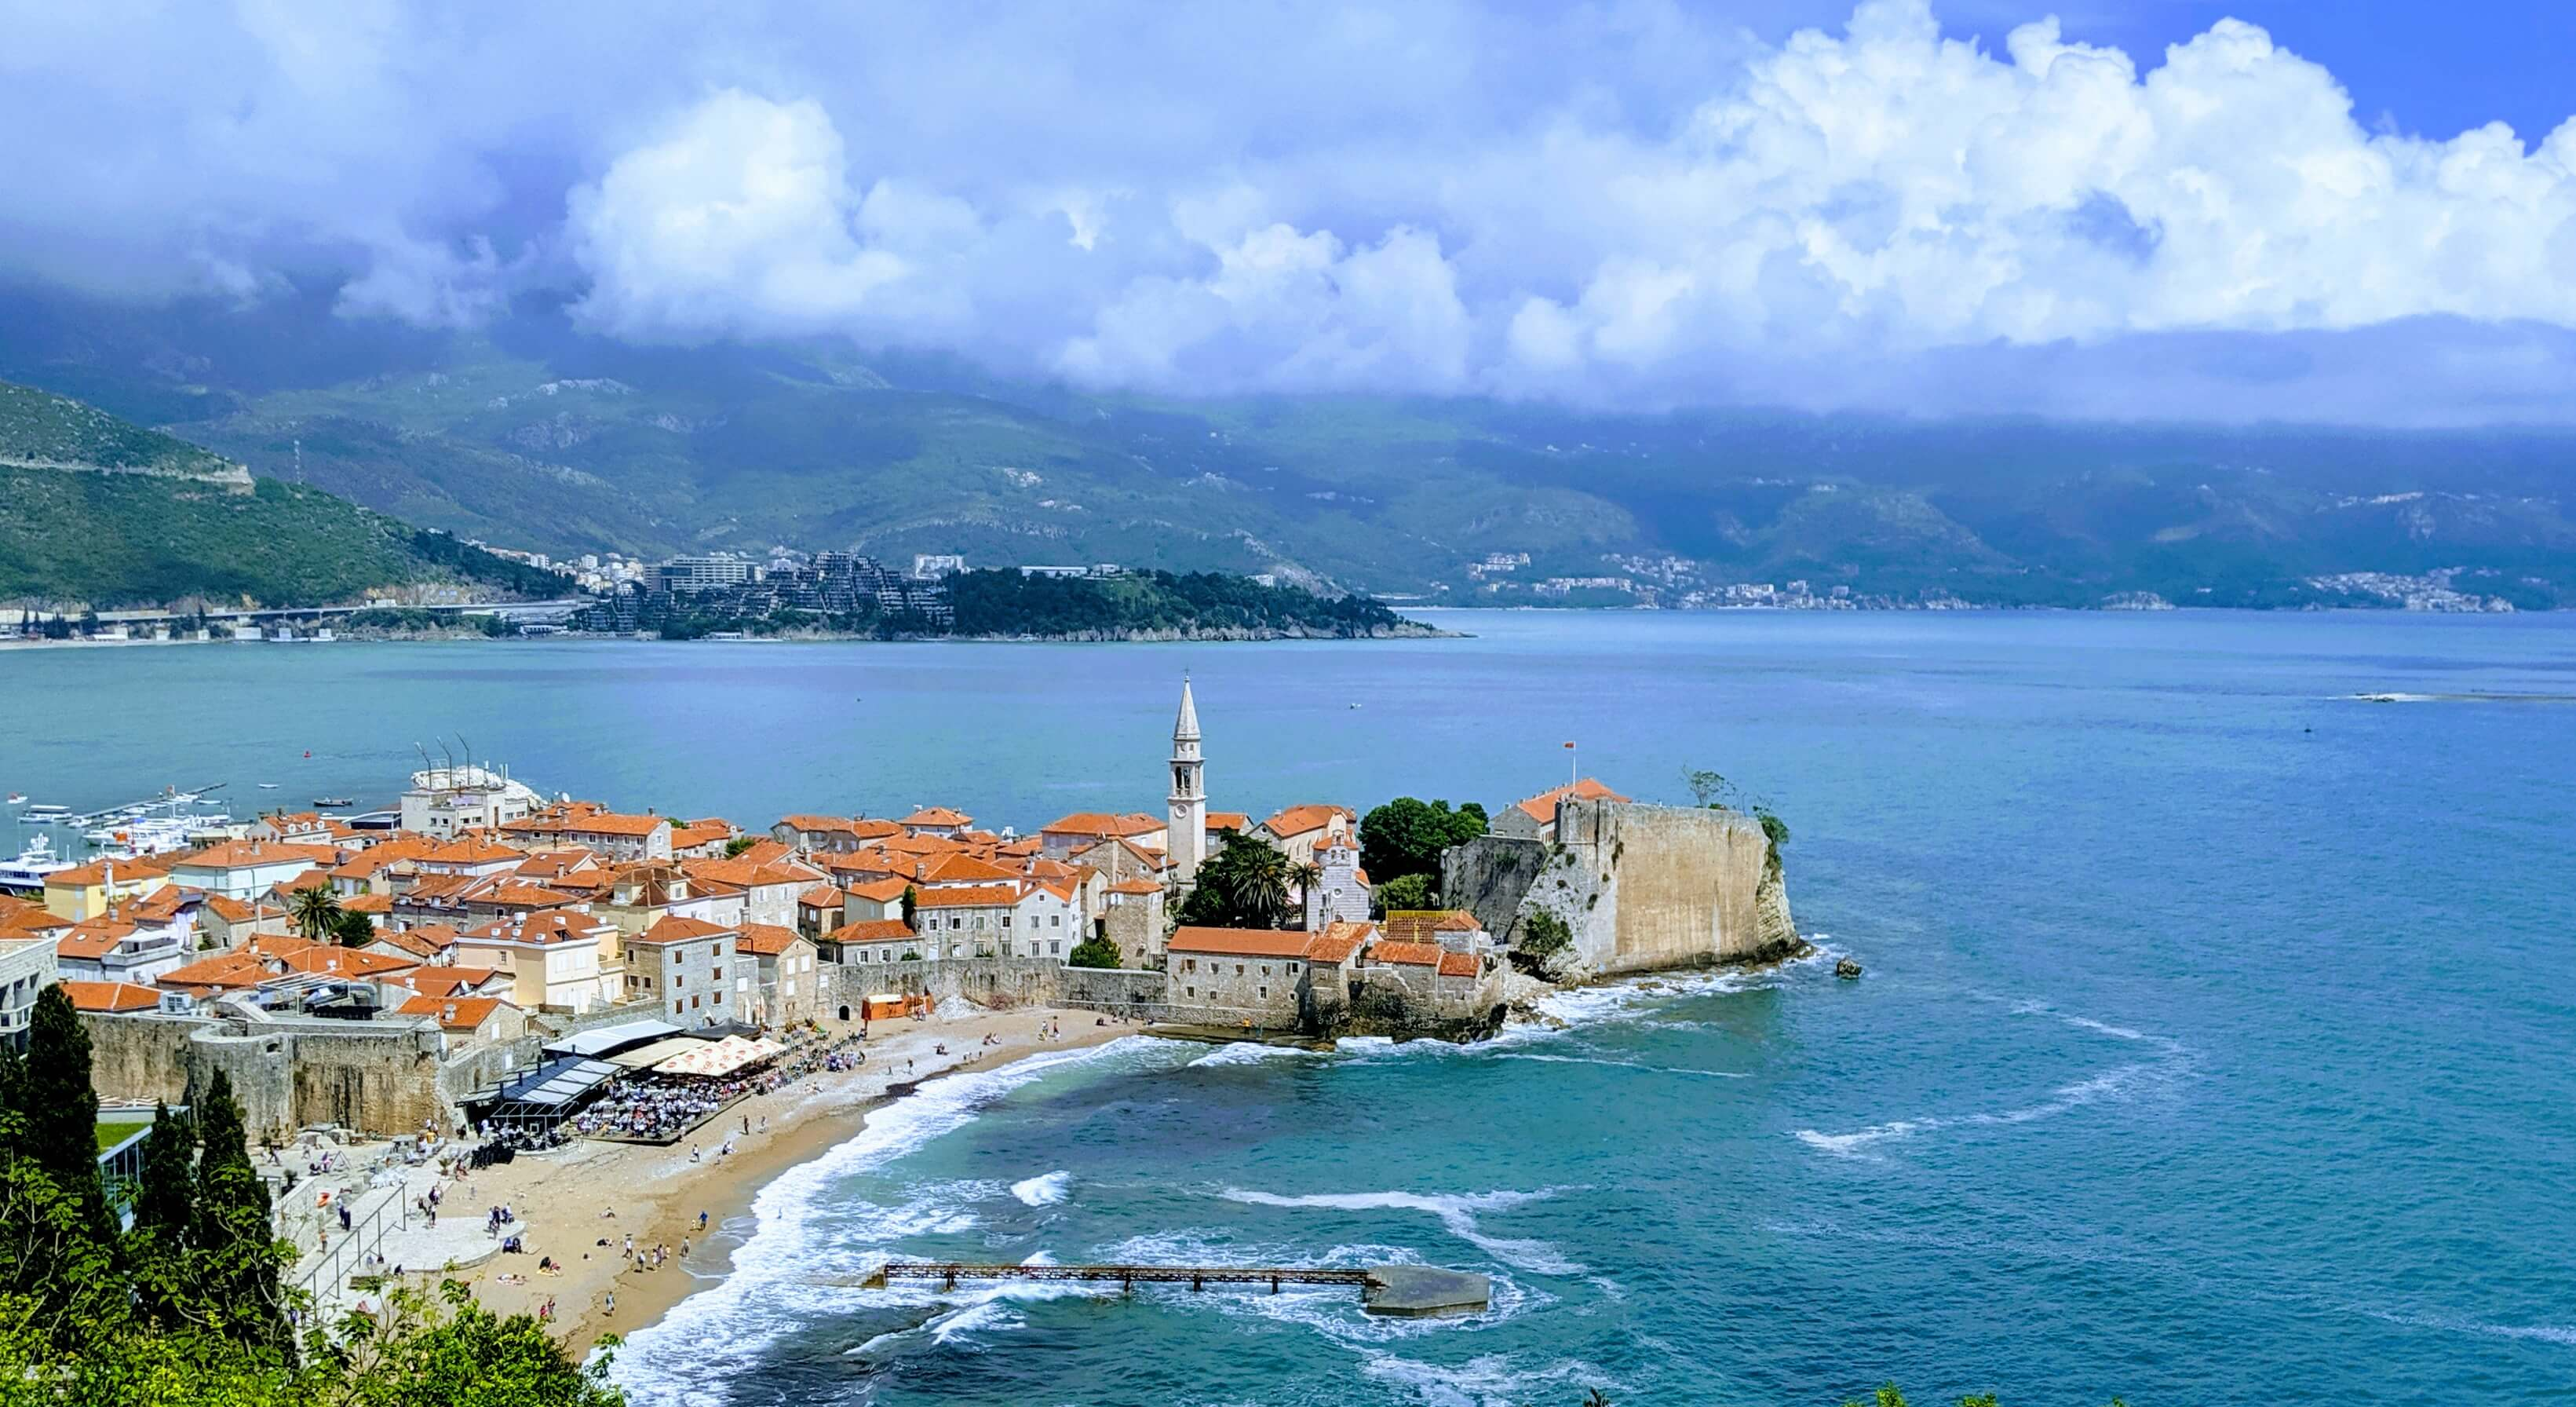 A view of Budva's Old Town from above.